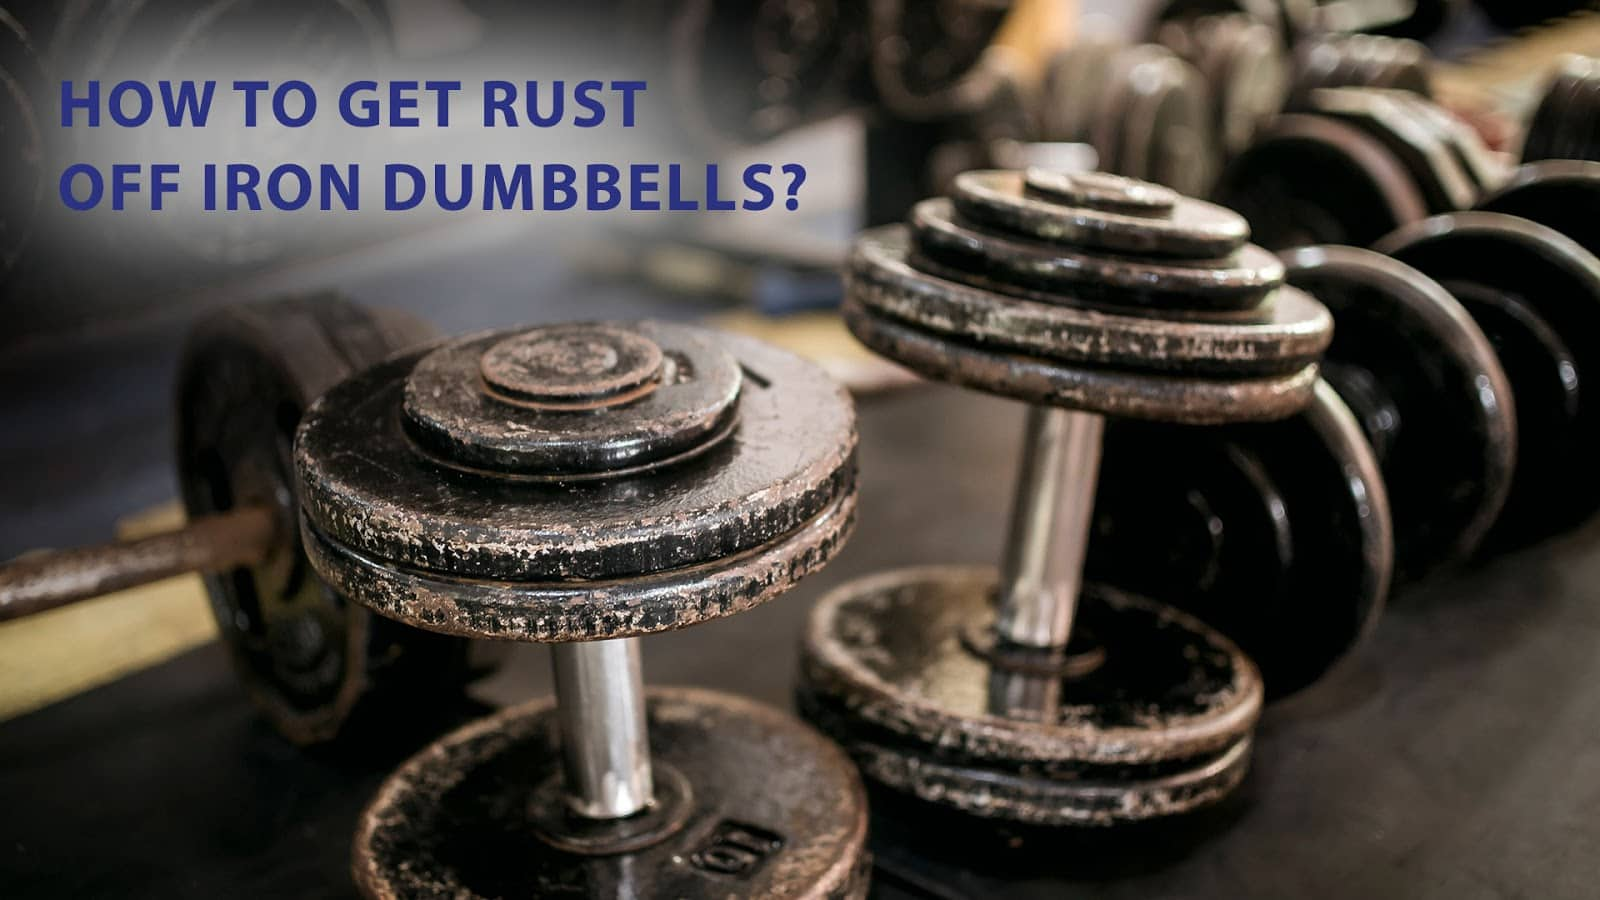 rust on iron dumbbells